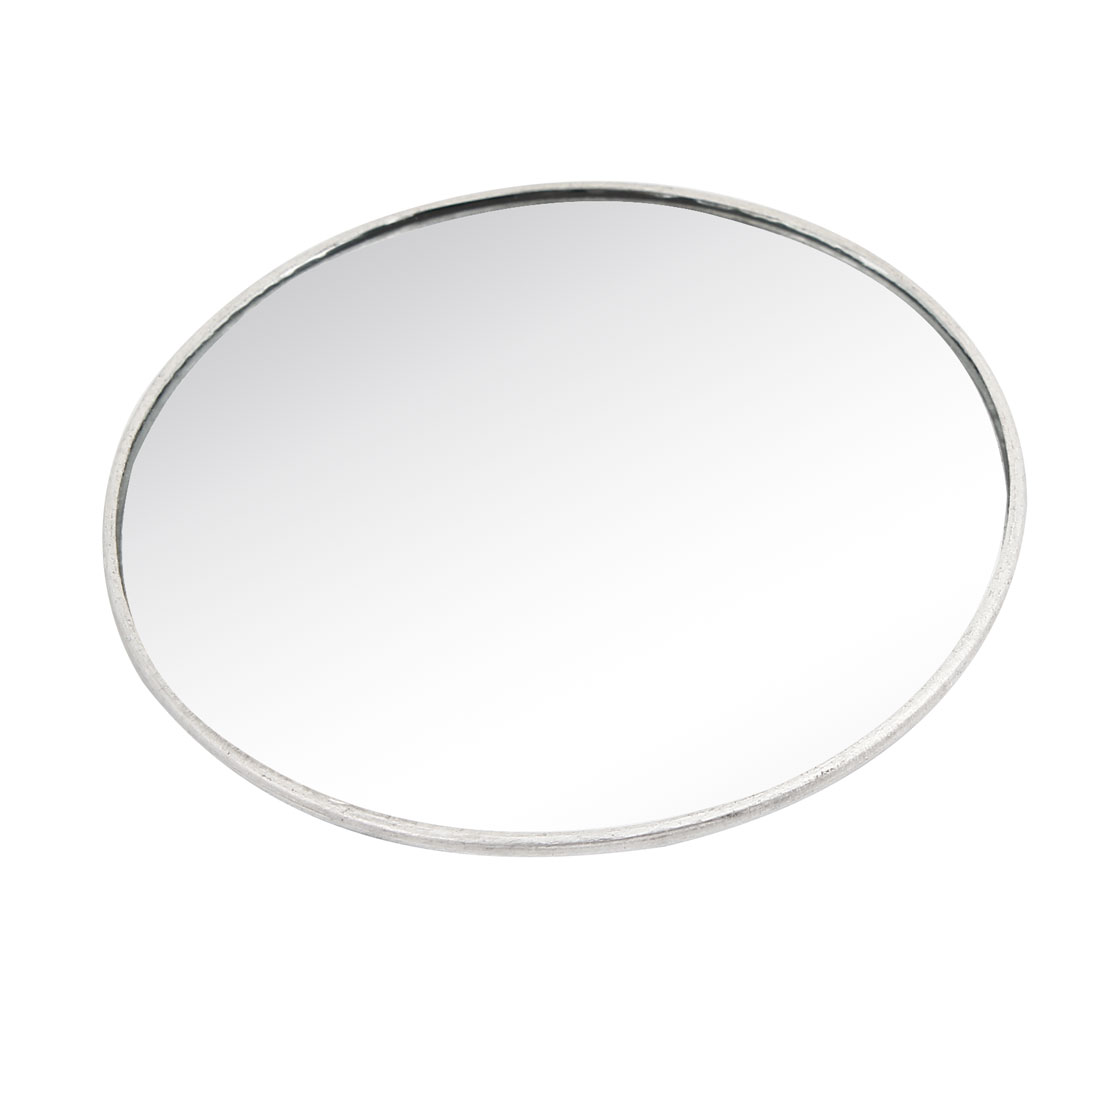 7.5cm Dia Silver Tone Frame Round Convex Rearview Blind Spot Mirror